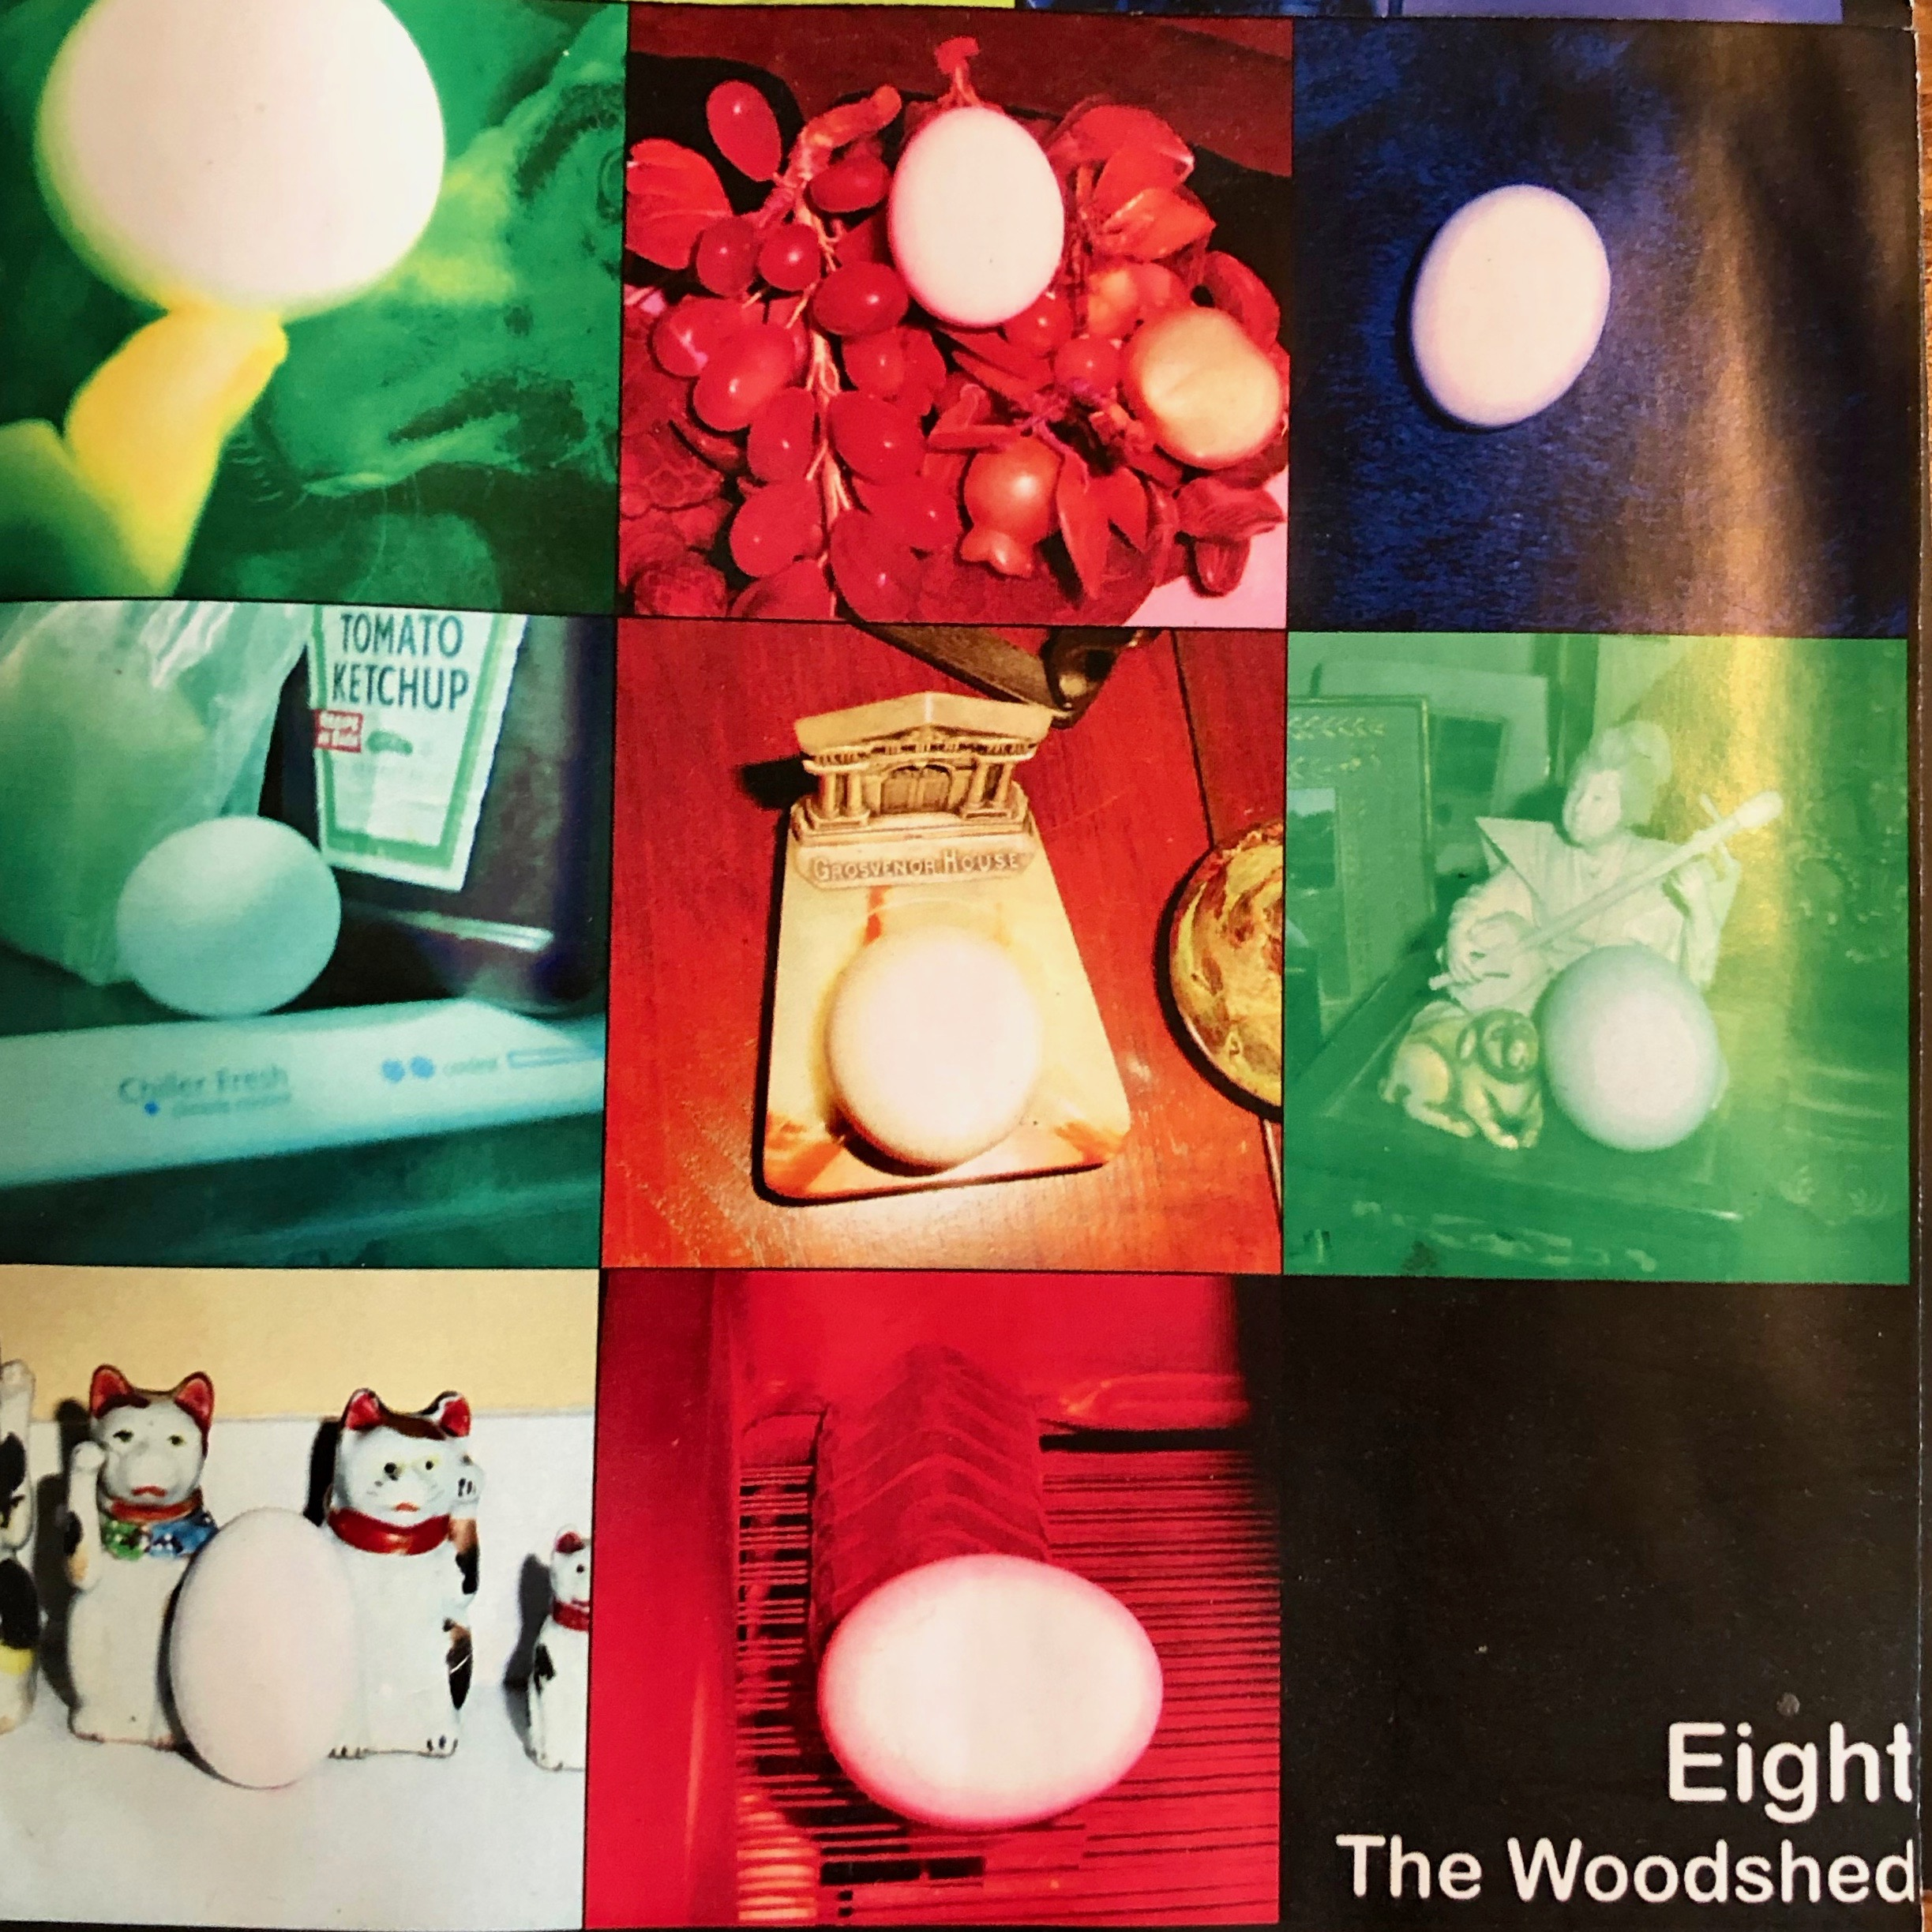 Eight (The Woodshed) - 2005 (not available online)